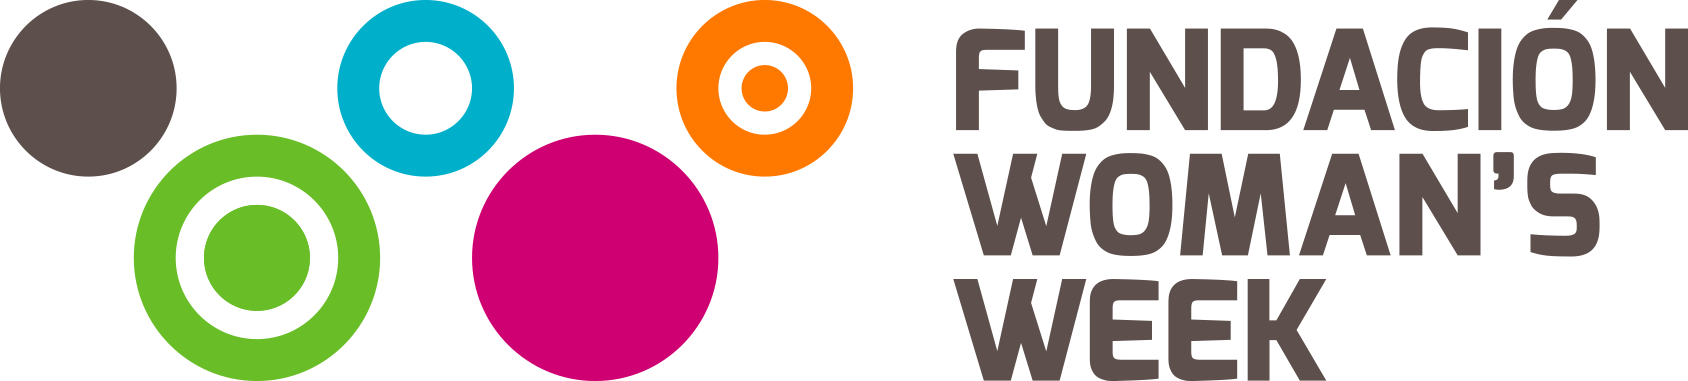 fundacion-womans-week-logotipo